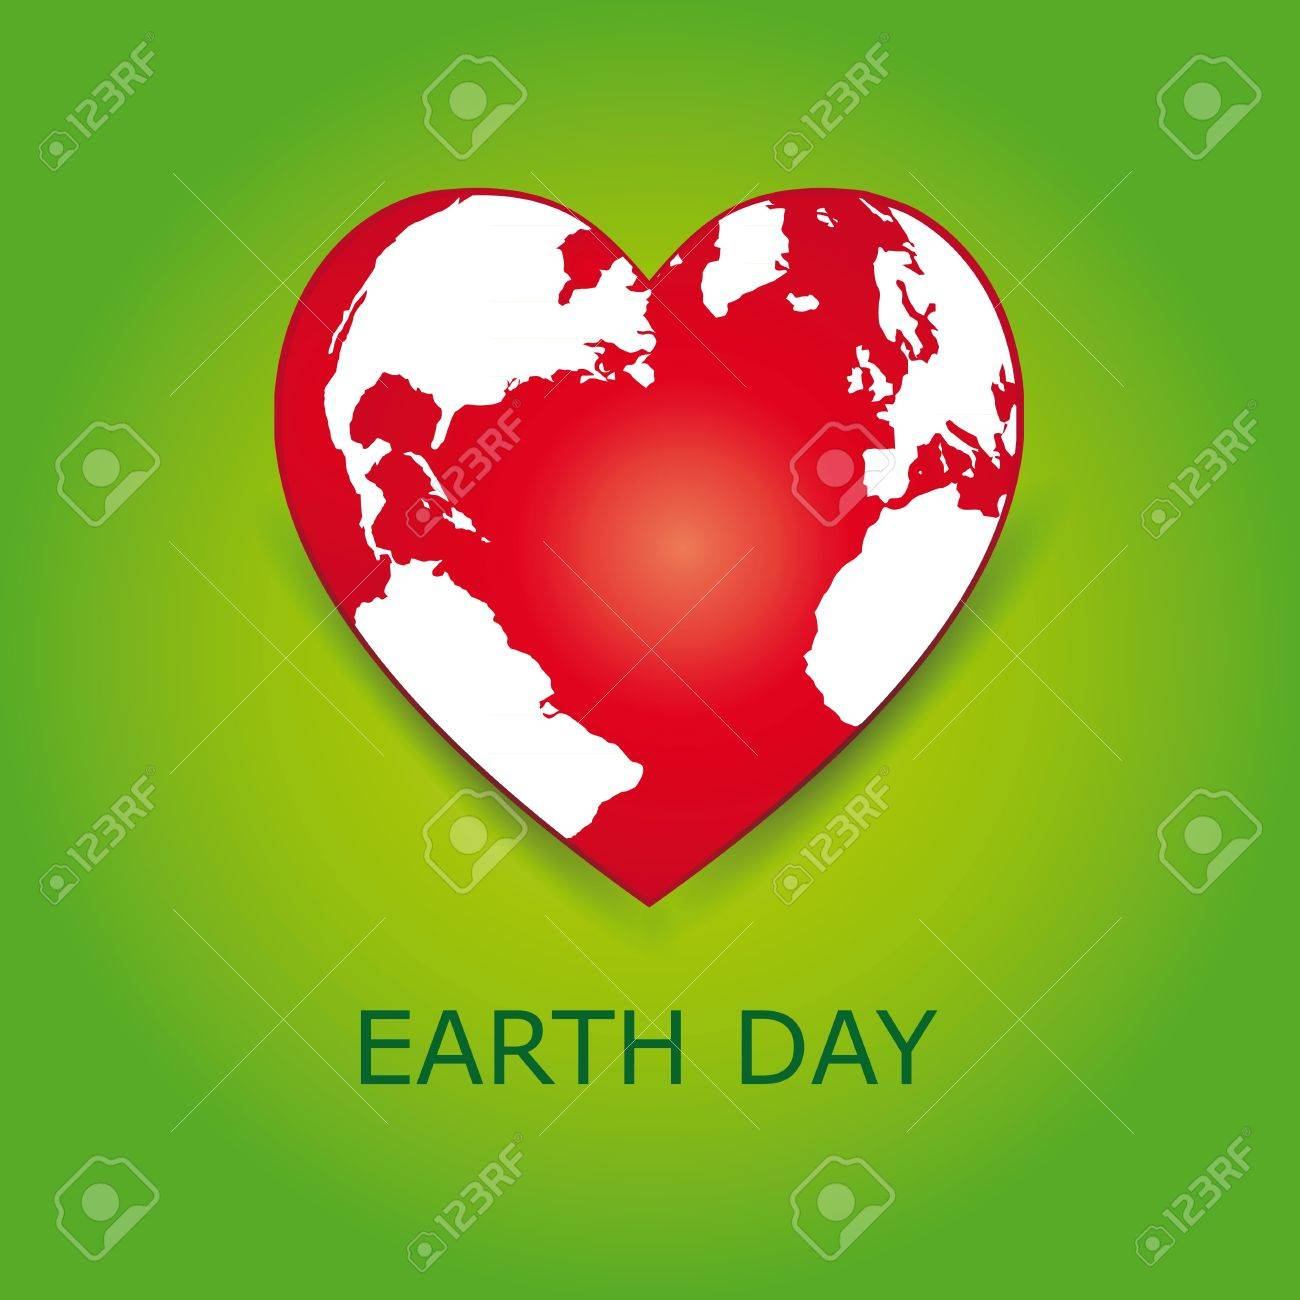 Abstract red heart together with green earth. Stock Vector - 18465681